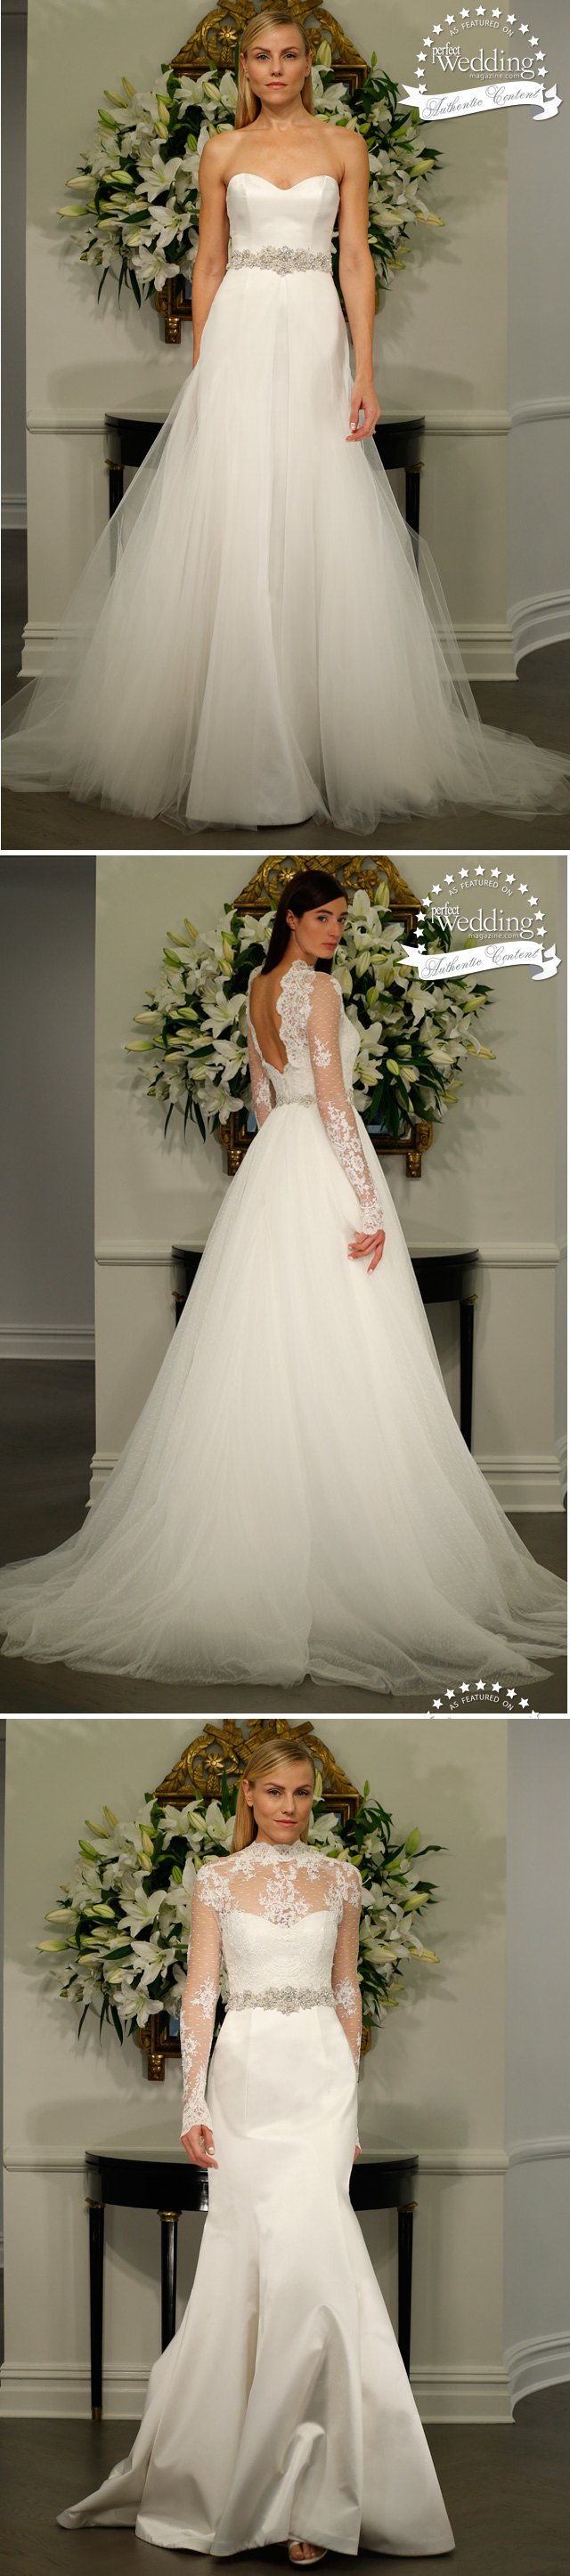 Legends Romona Keveza, Fall 2015 Bridal collection, Perfect Wedding Magazine, Fall Bridal Trends